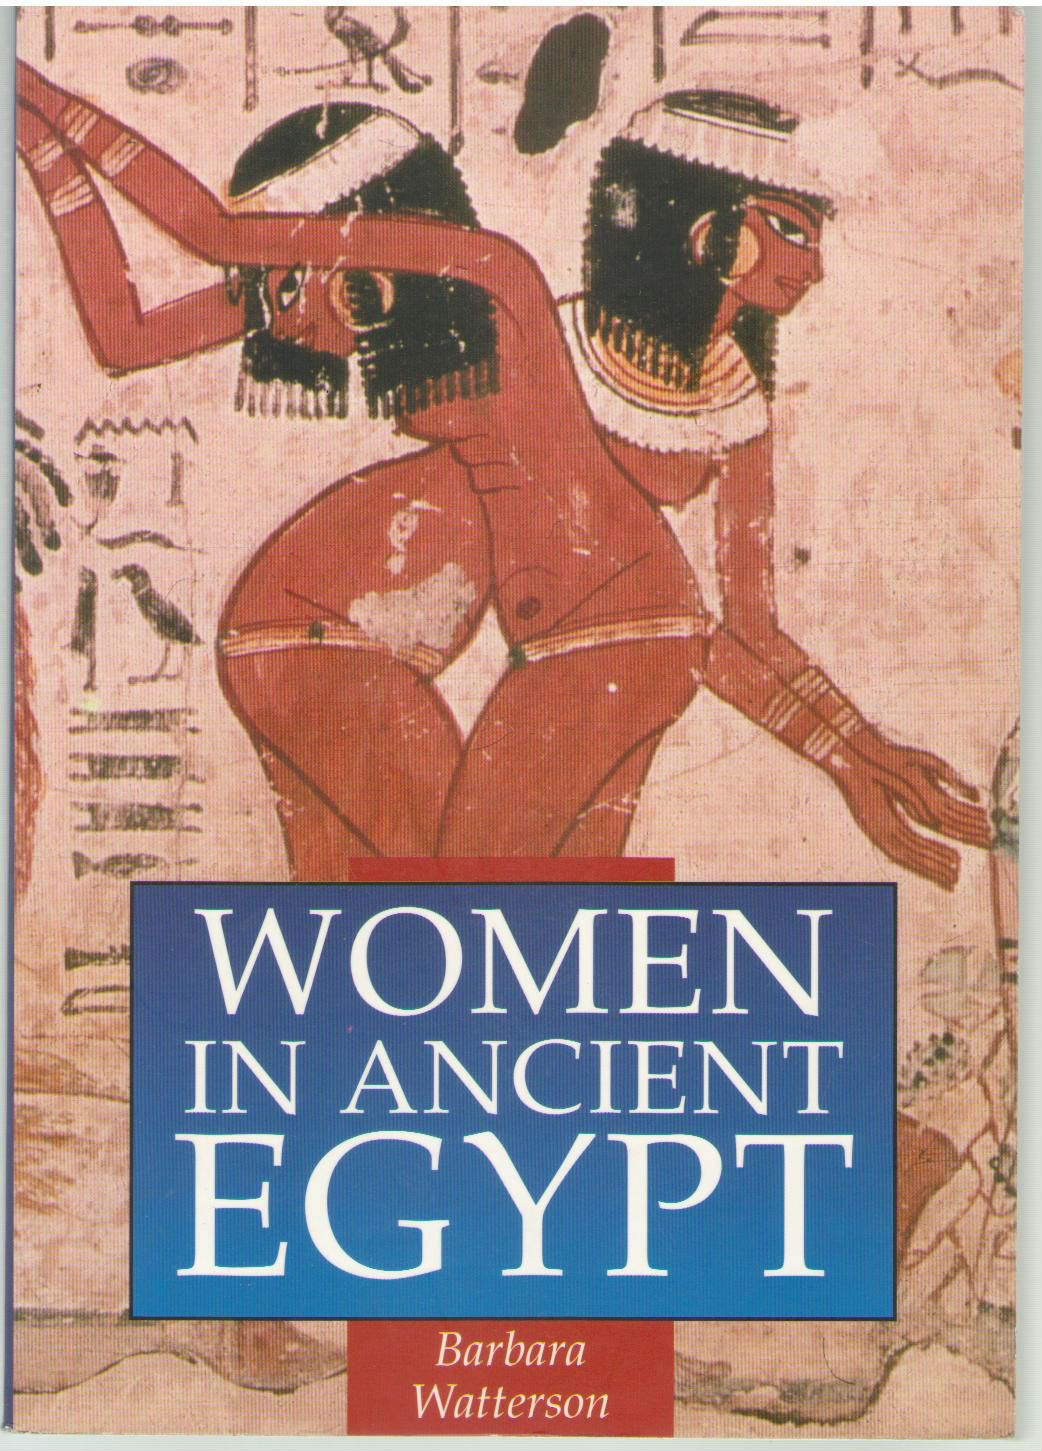 WOMEN IN ANCIENT EGYPT (ILLUSTRATED HISTORY PAPERBACKS), BARBARA WATTERSON